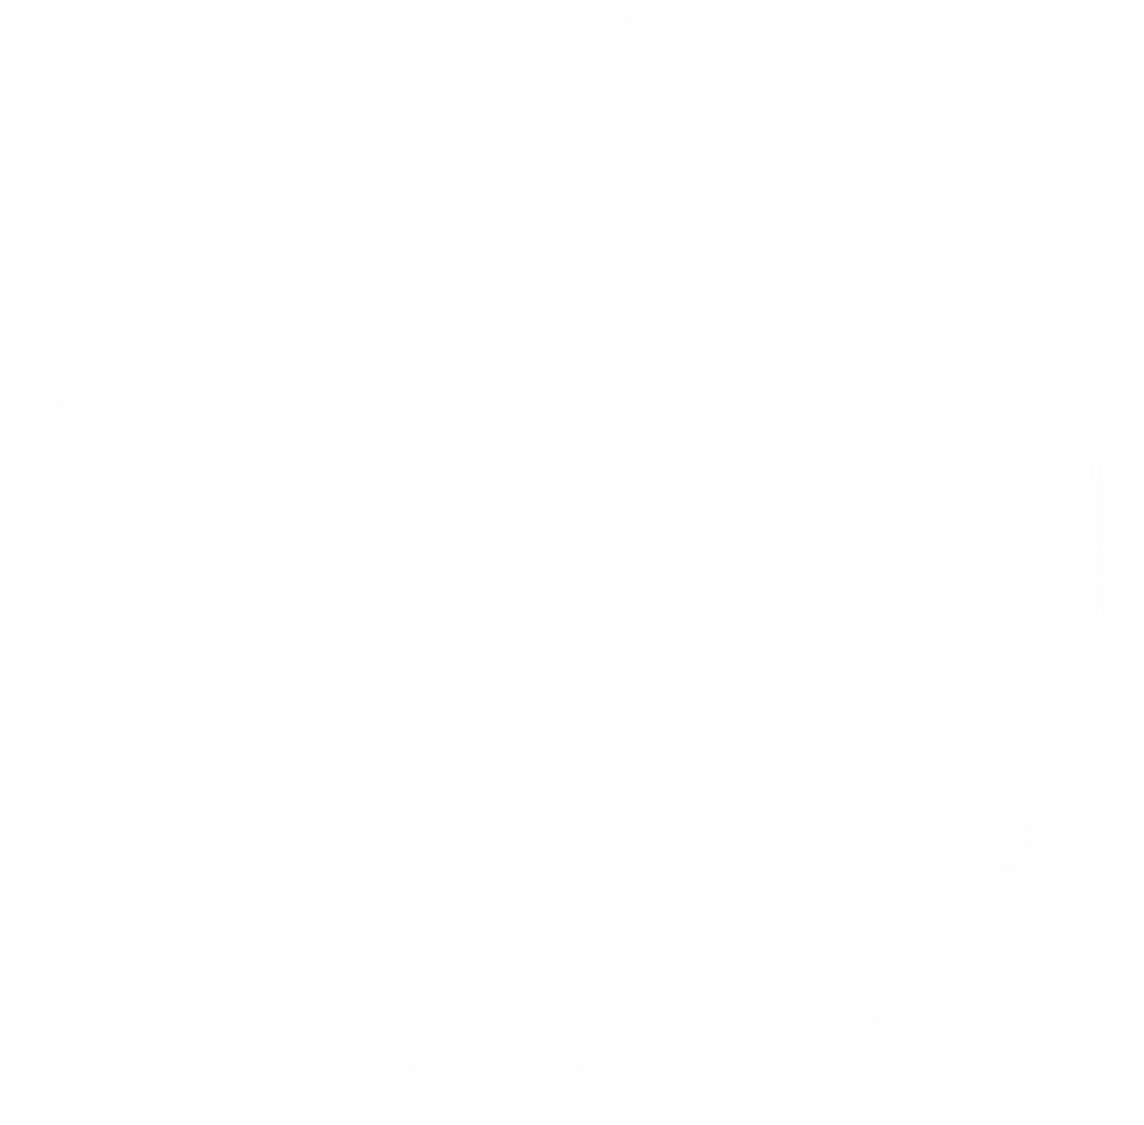 eido communications